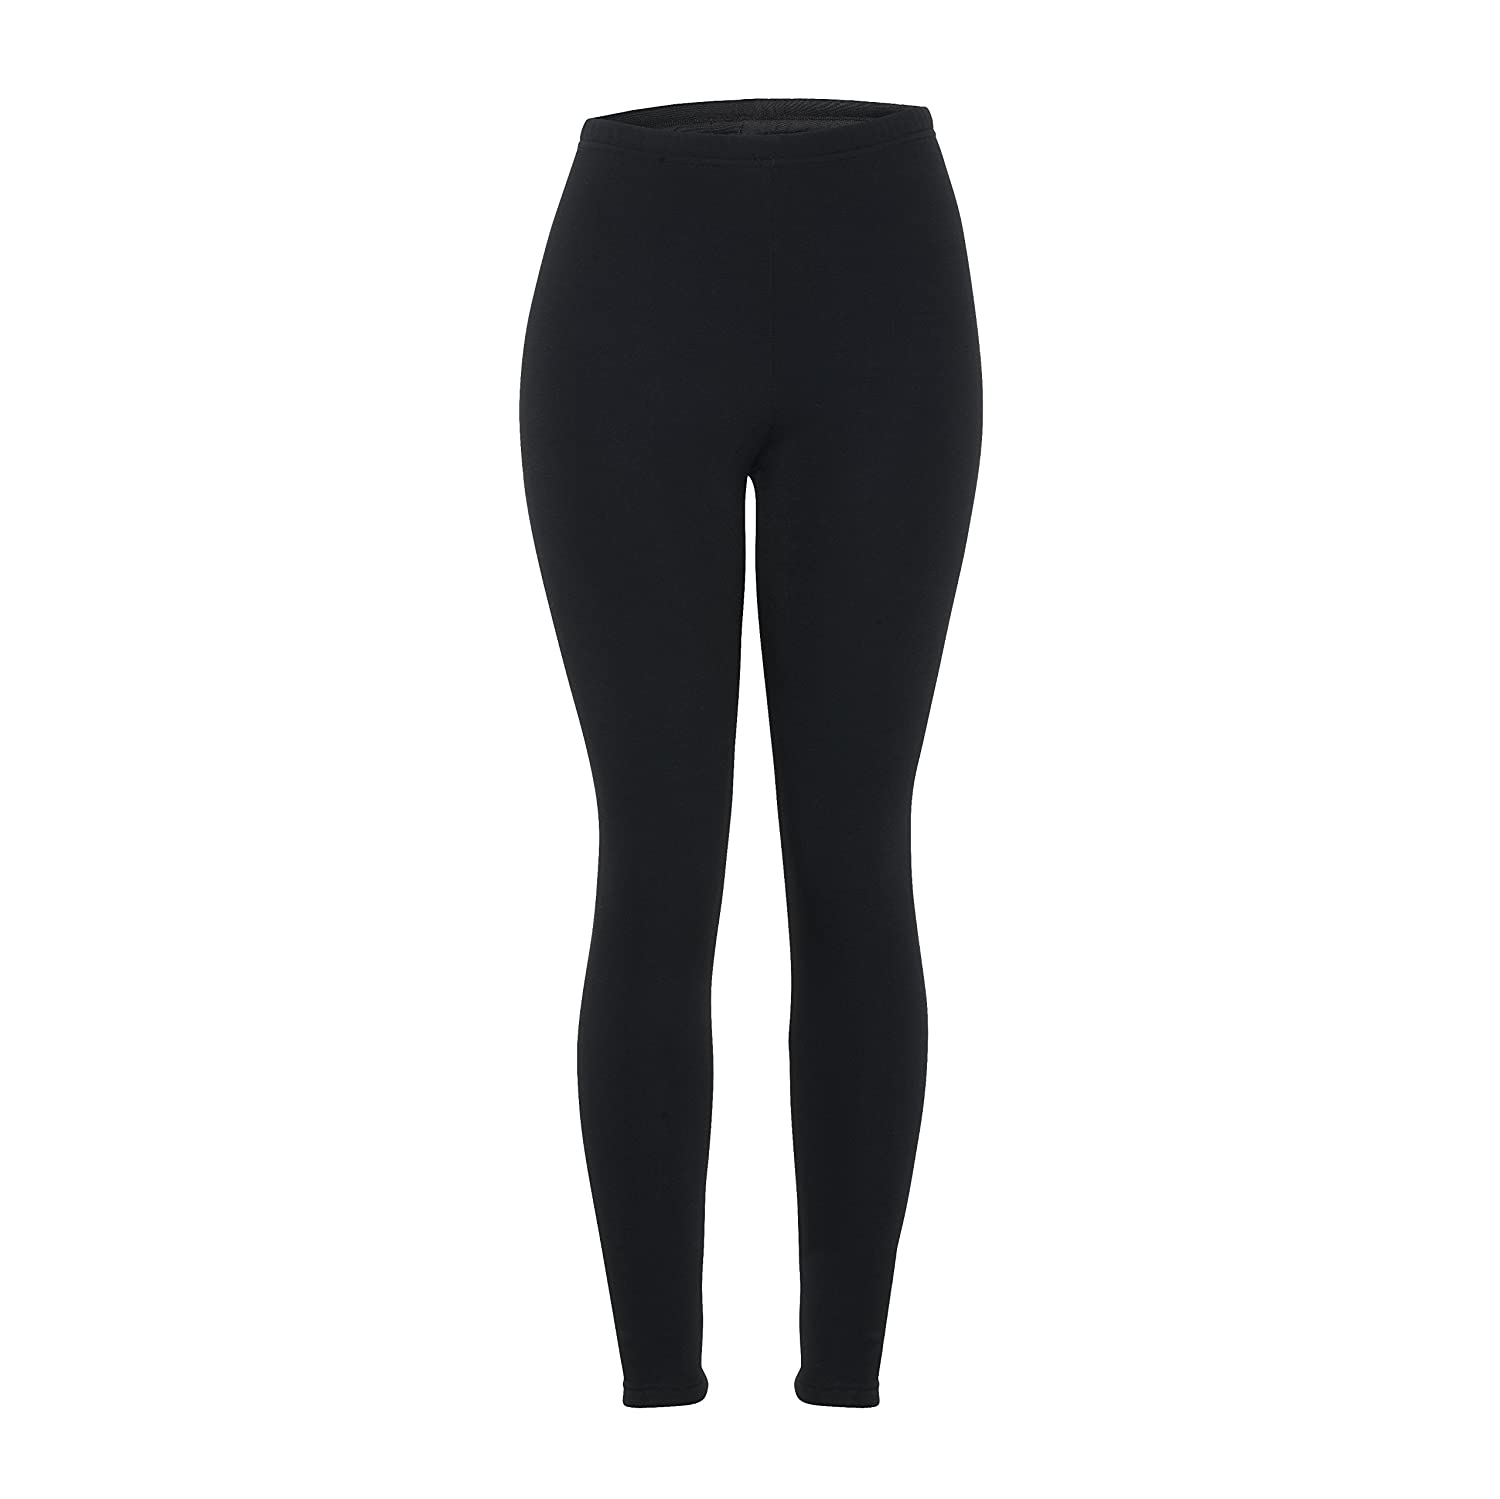 [RUNAFIT] Faux Fur-Lined Winter Leggings Regular 801 AW International